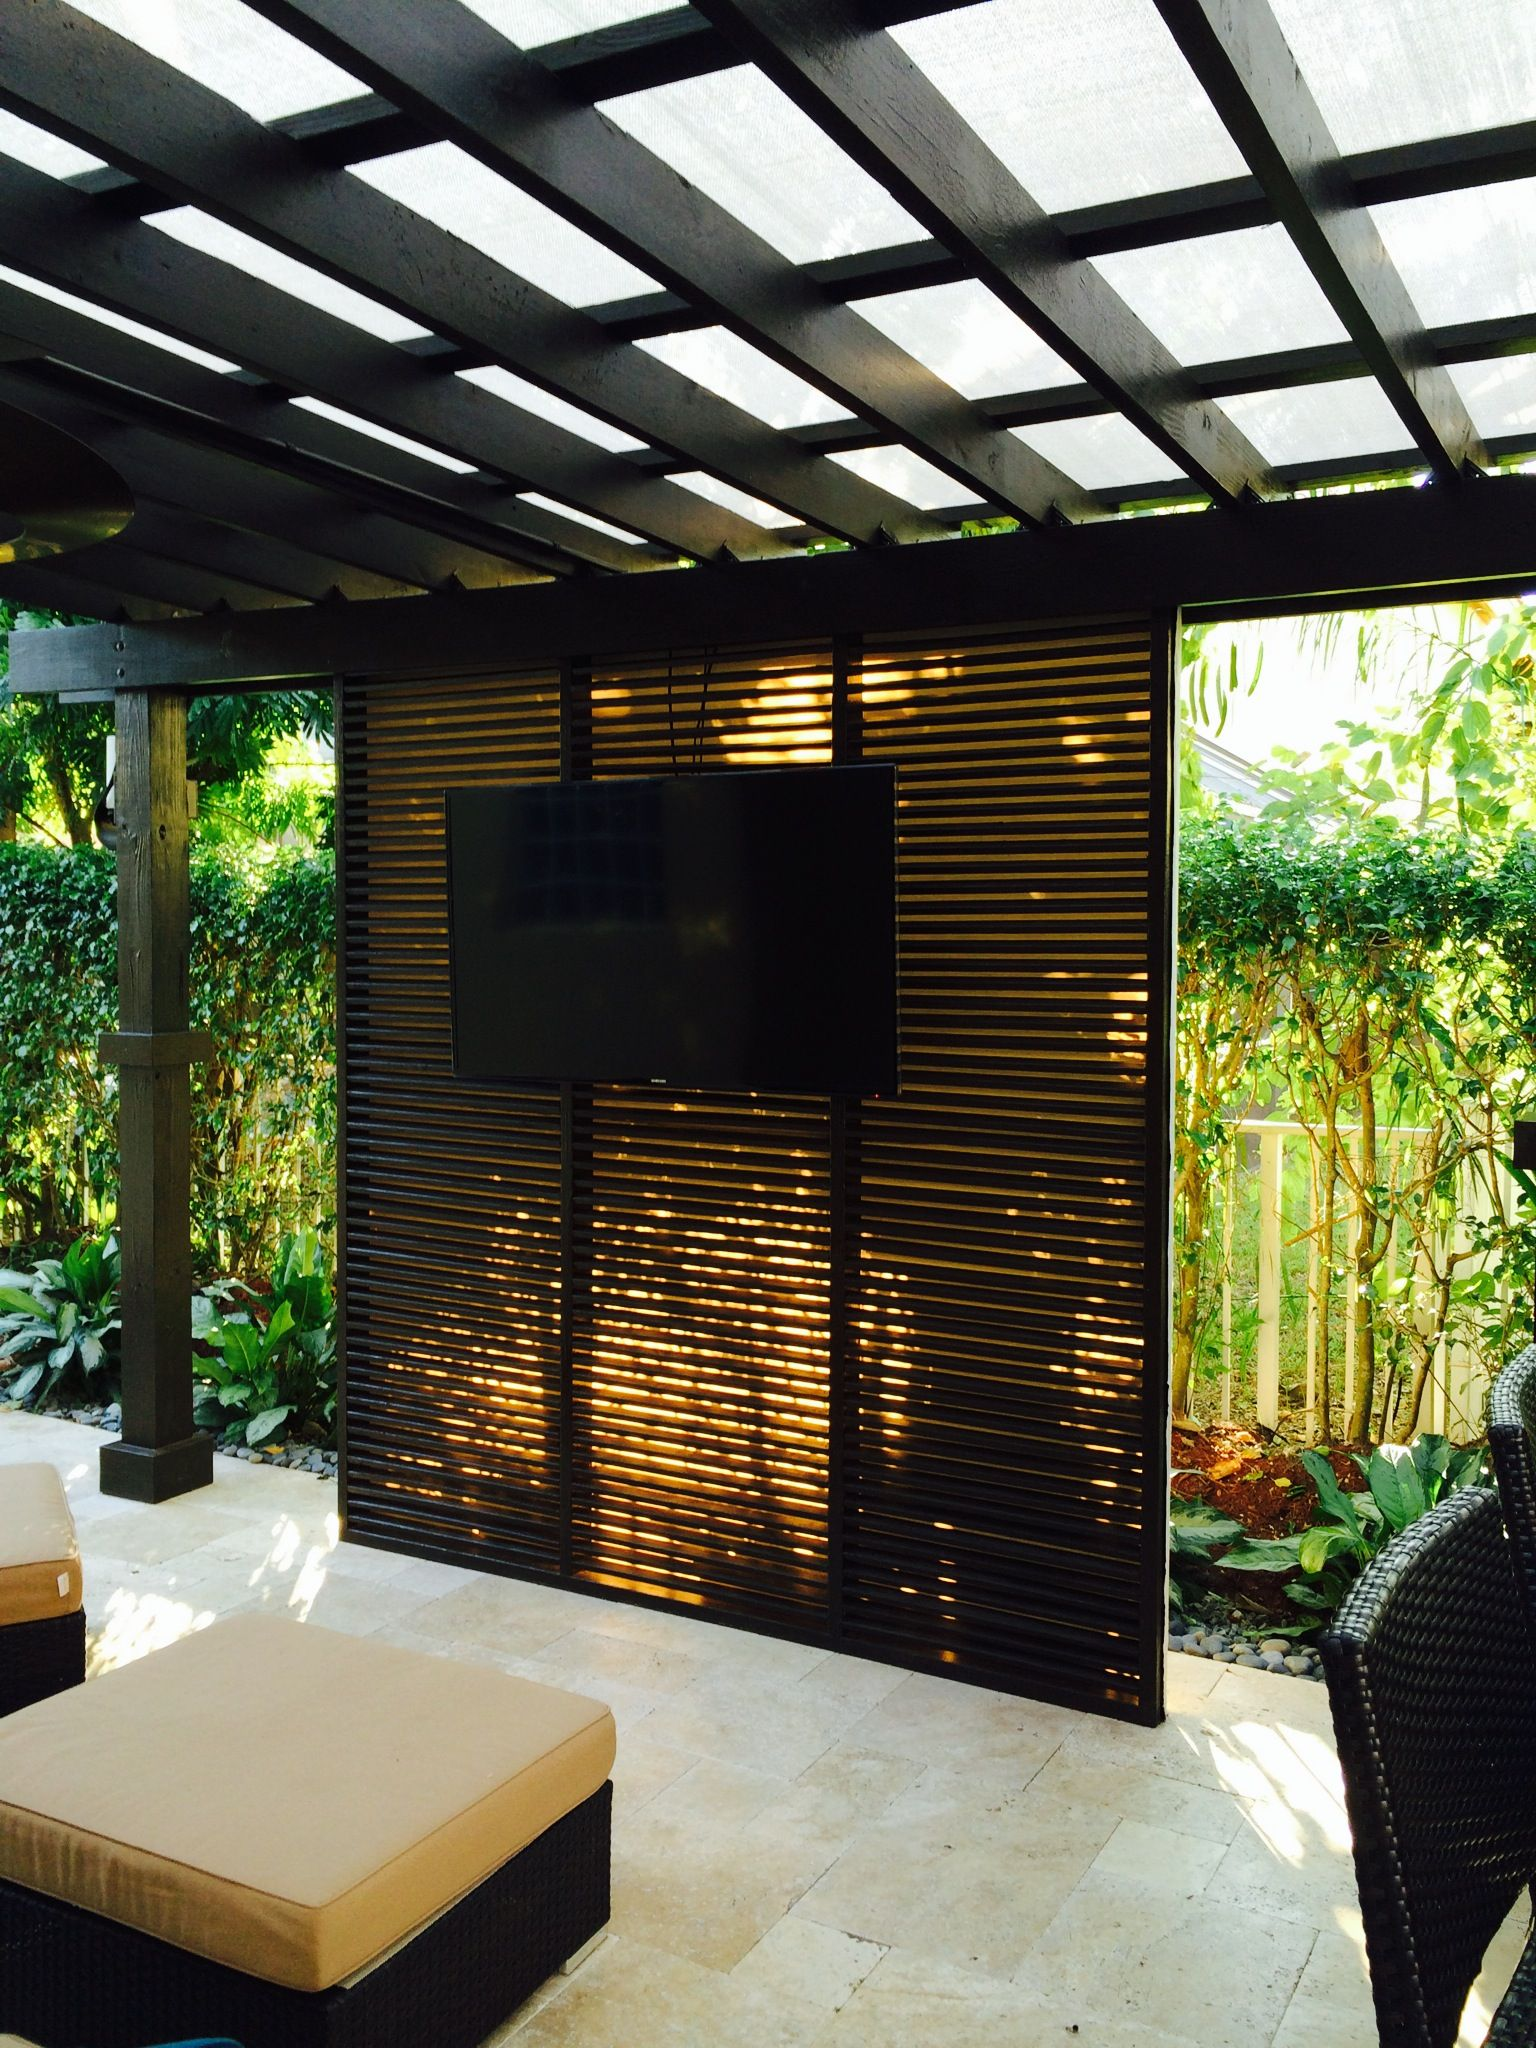 Pergola Shade Structure For Outdoor Kitchen With Privacy